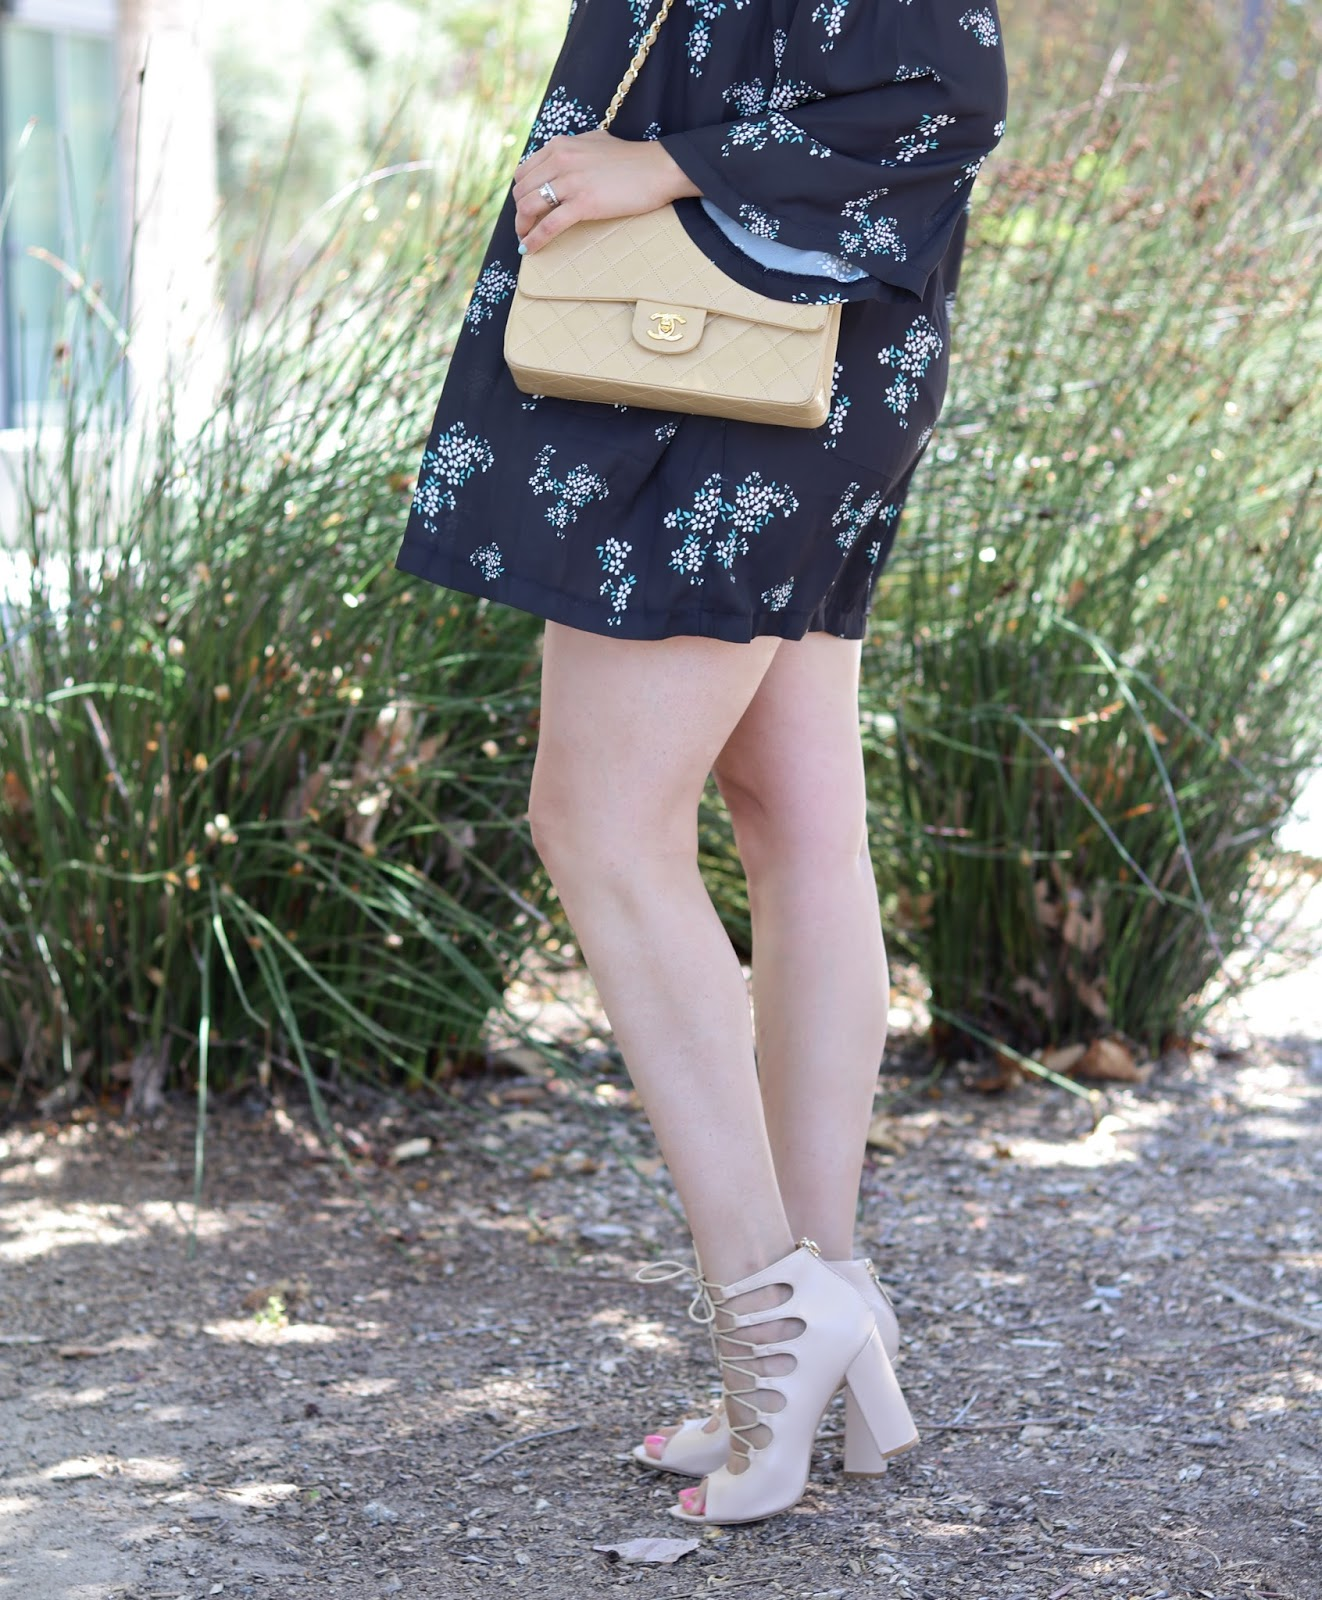 Nude Chanel Purse and nude lace up heels, how to wear a nude chanel purse, casual look with chanel flap bag